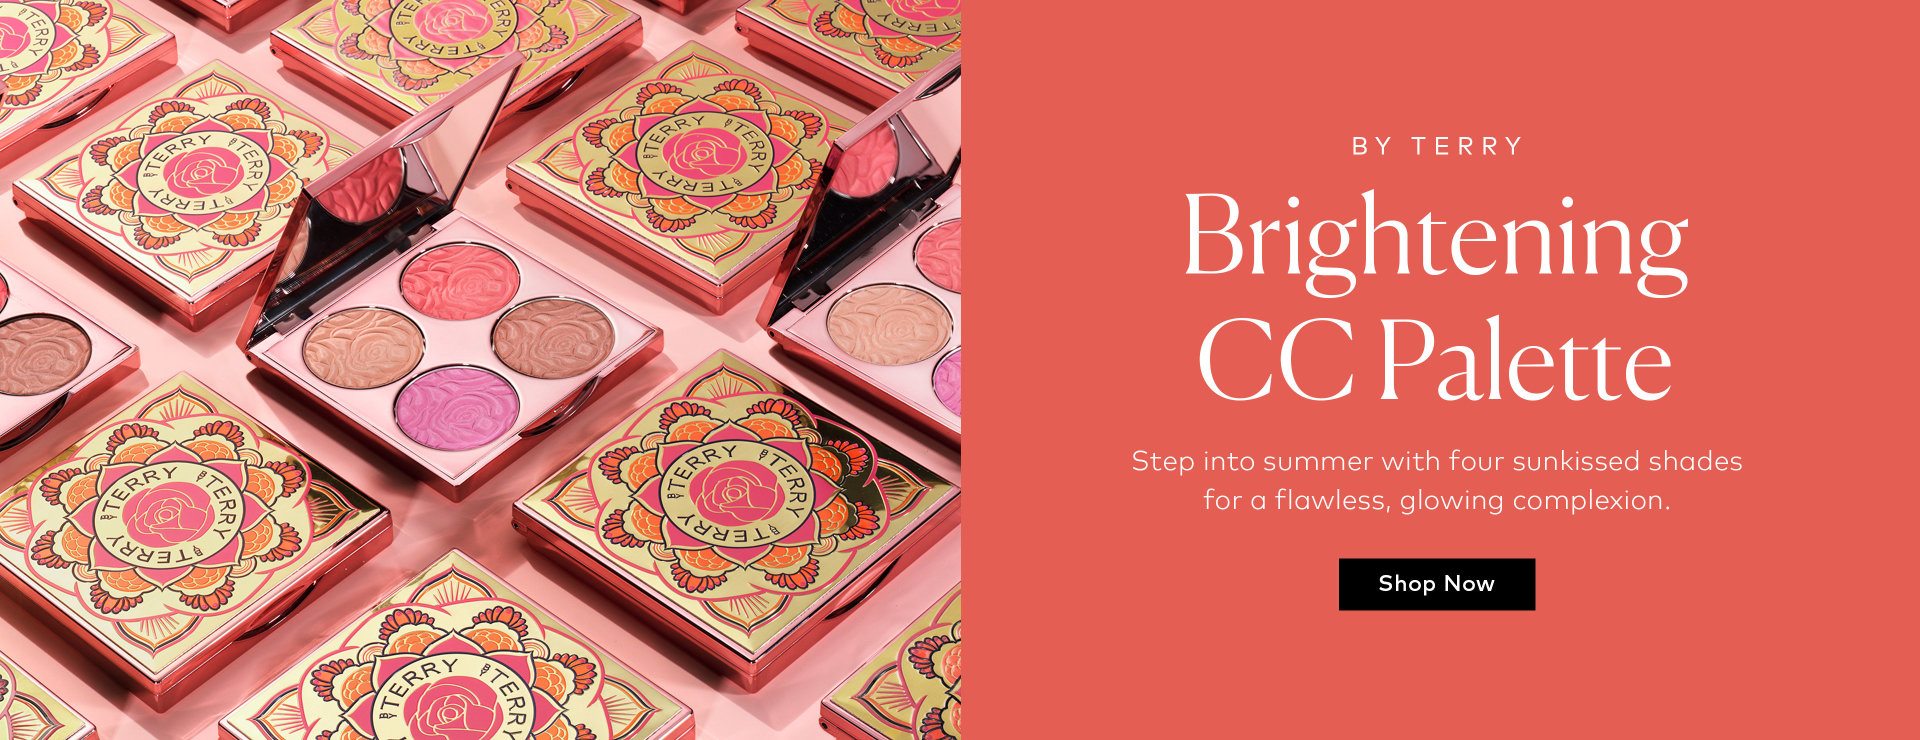 Shop BY TERRY's Brightening CC Palette Peach Bomb on Beautylish.com